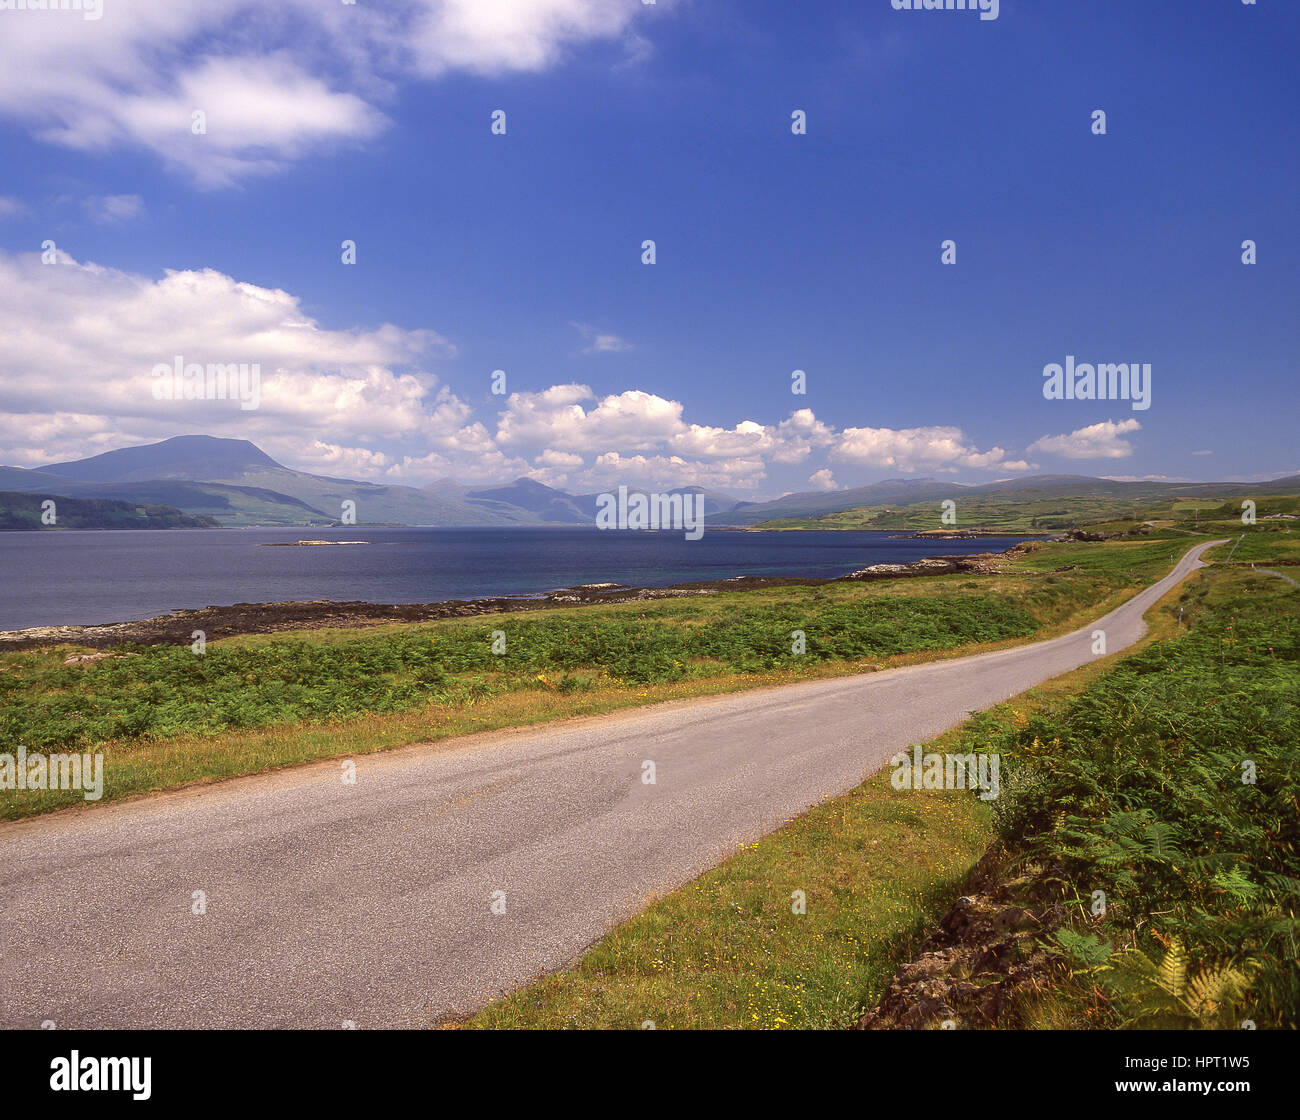 Road by Loch Scridain, Isle of Mull, Argyll and Bute, Scotland, United Kingdom - Stock Image